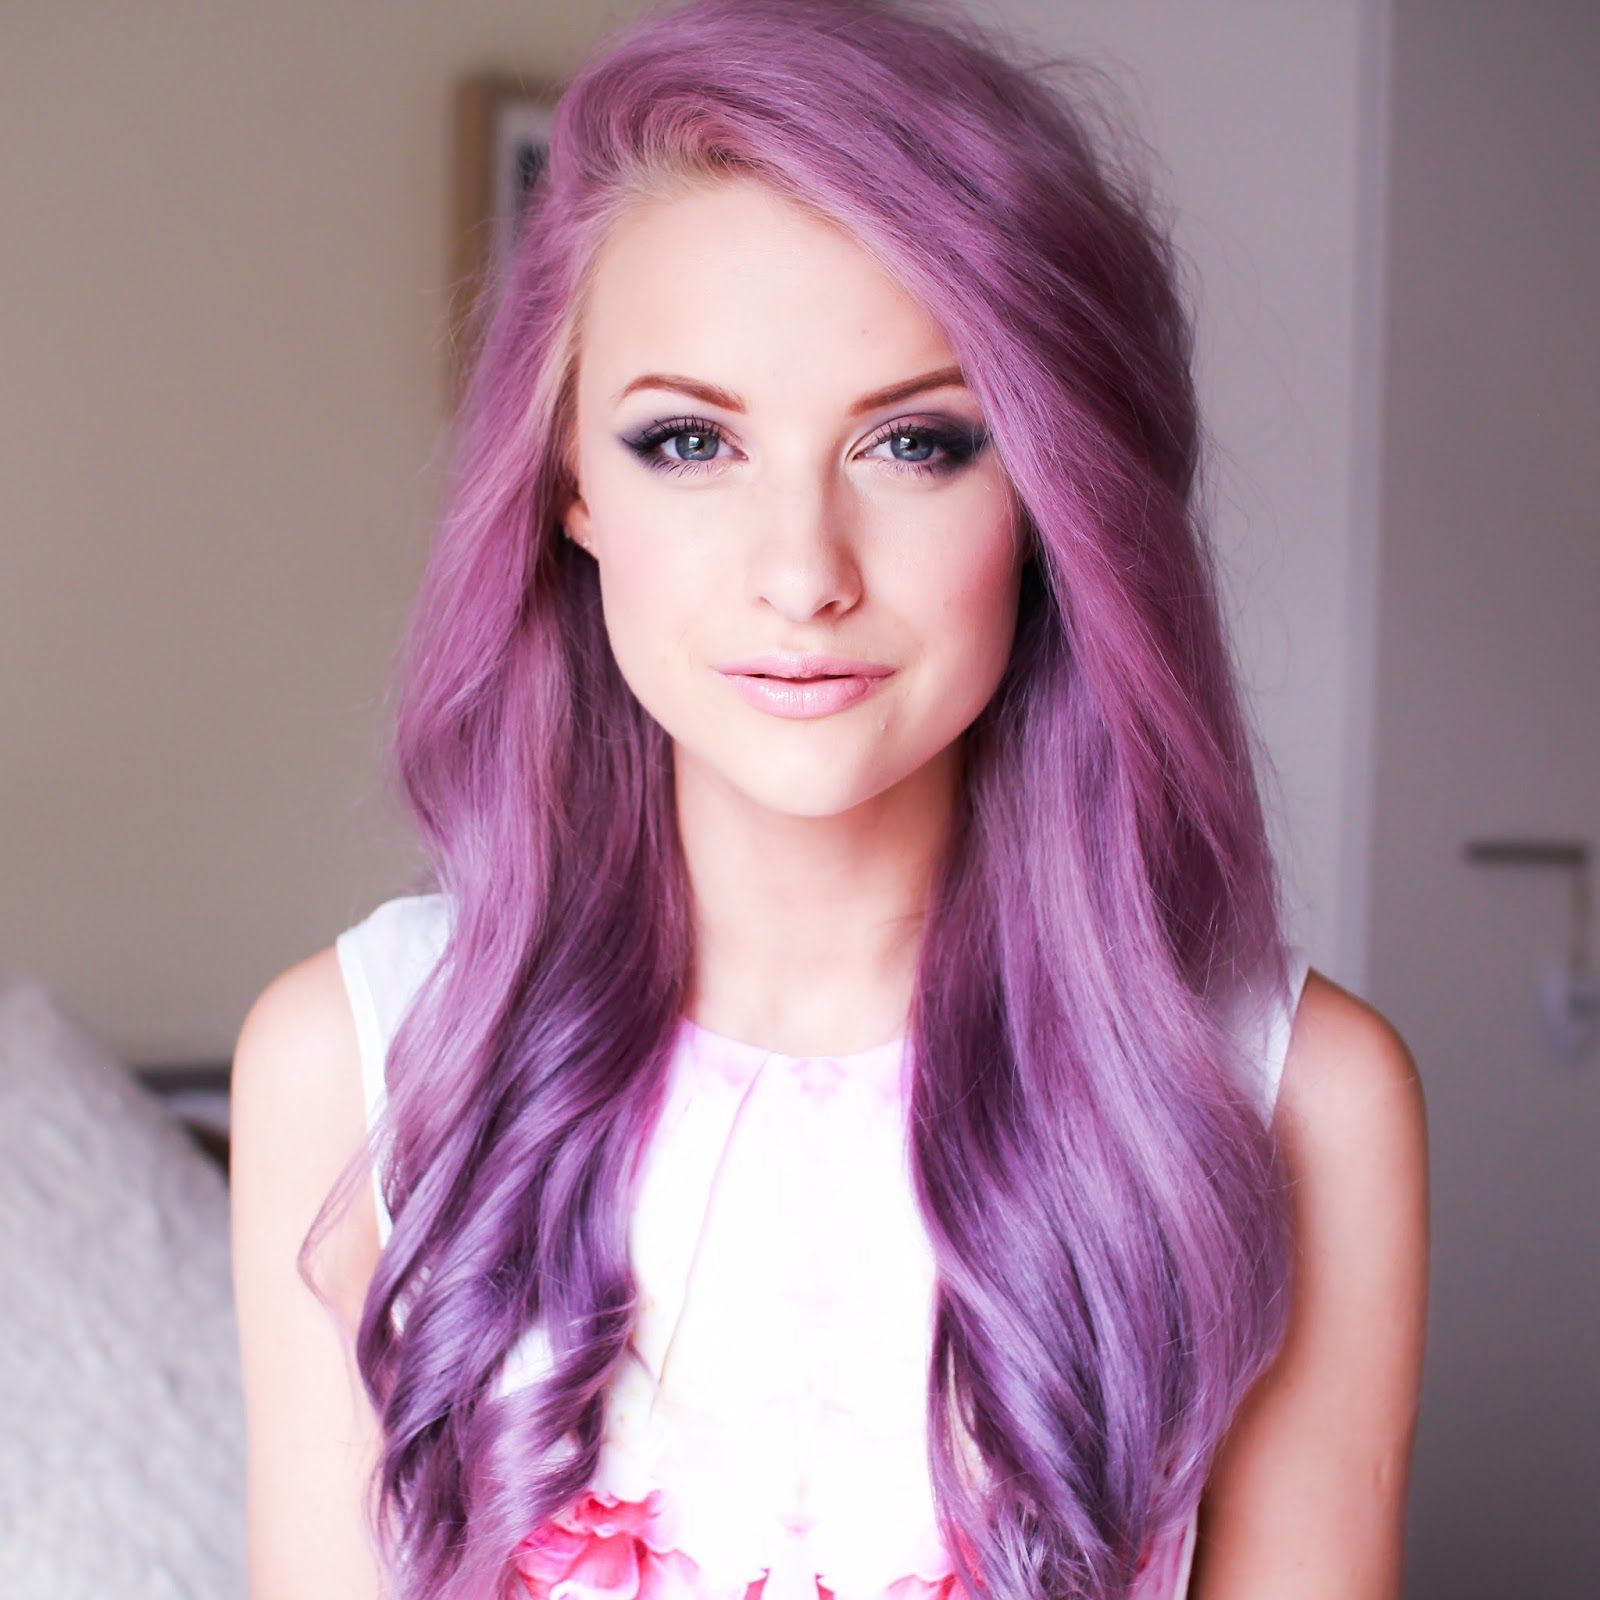 Get Ready With Me: Smokey Plum Eyes and Curls   Hair   Pinterest ...